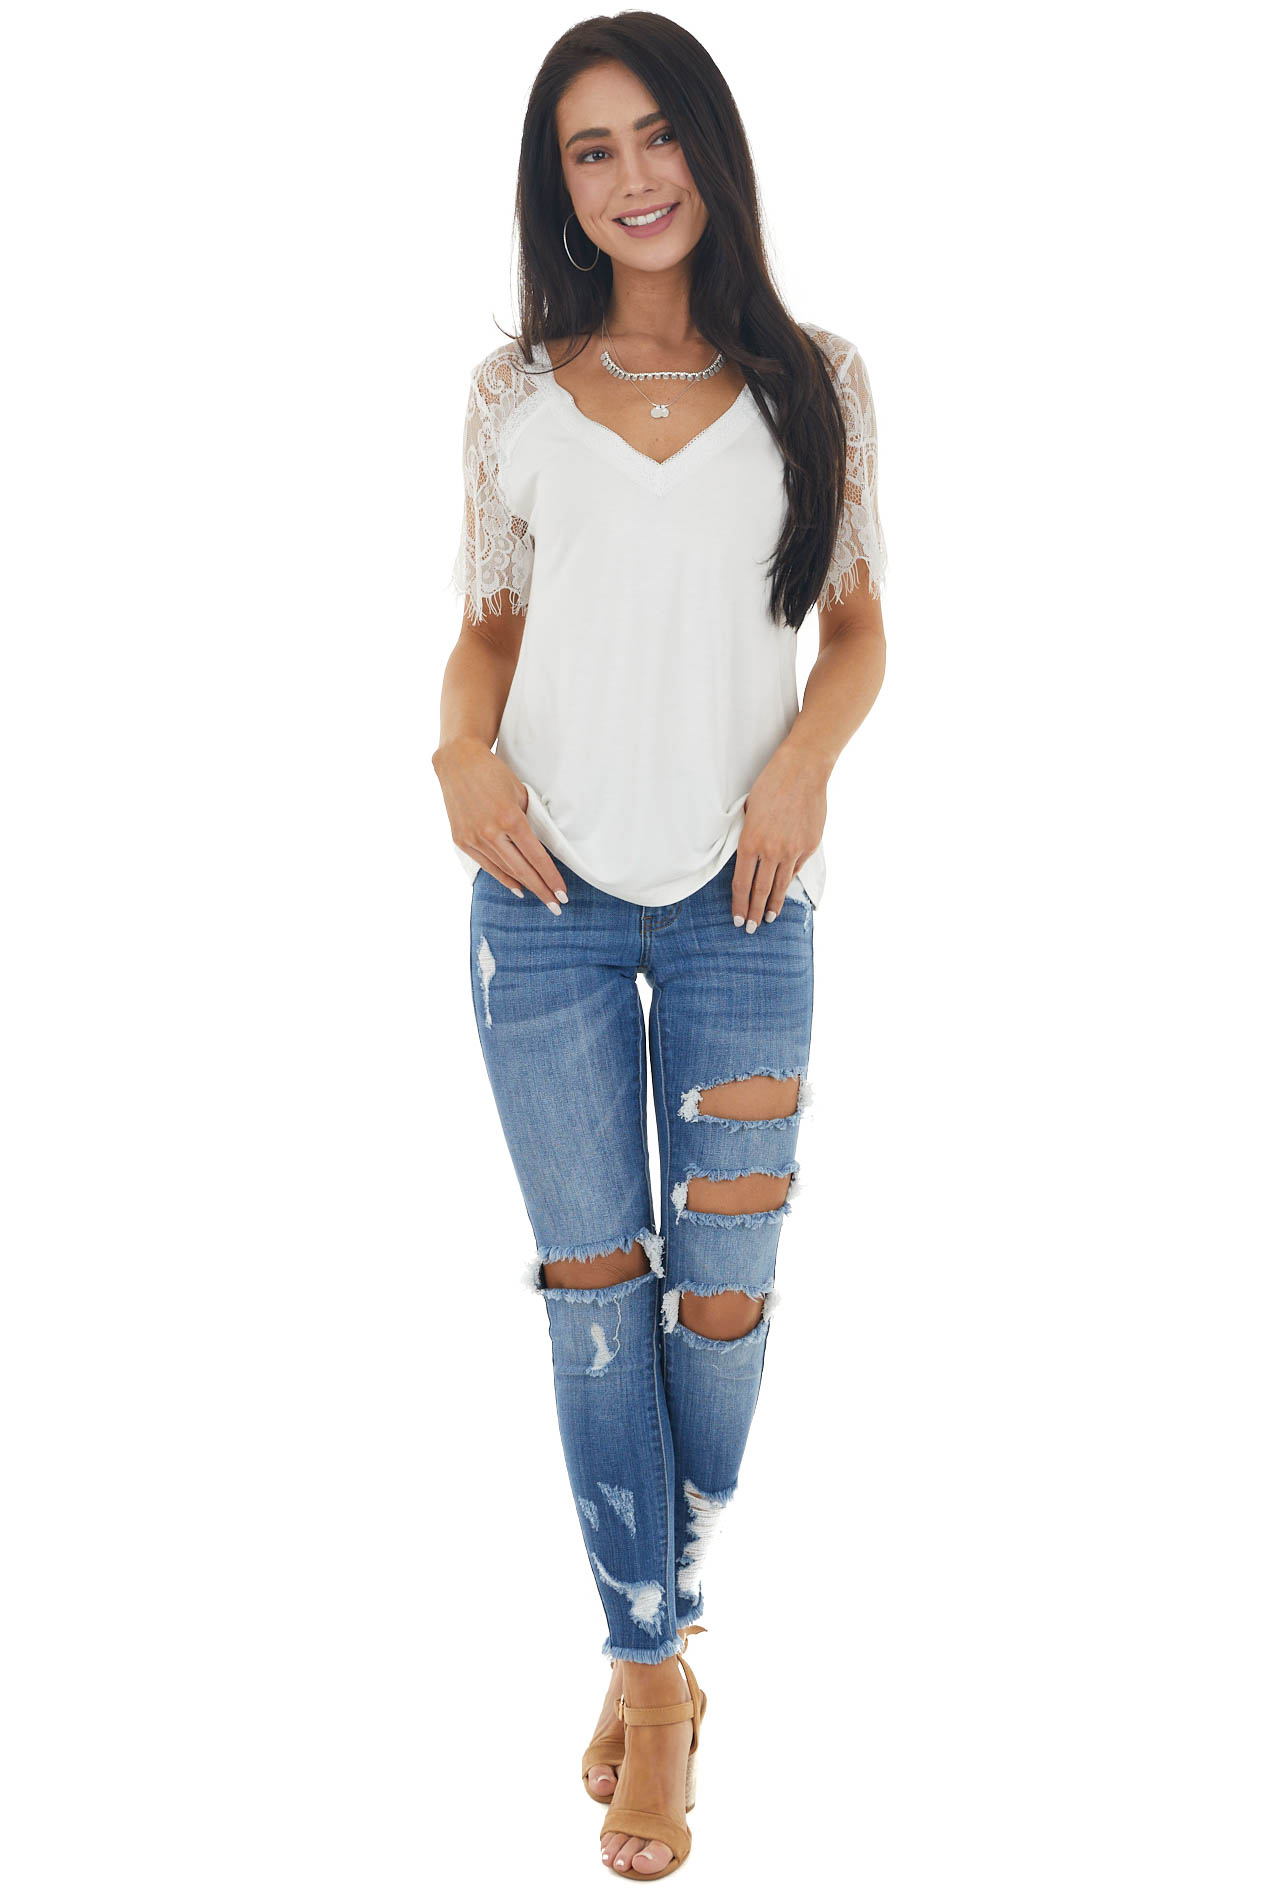 Ivory Short Sleeve Knit Top with Lace Details